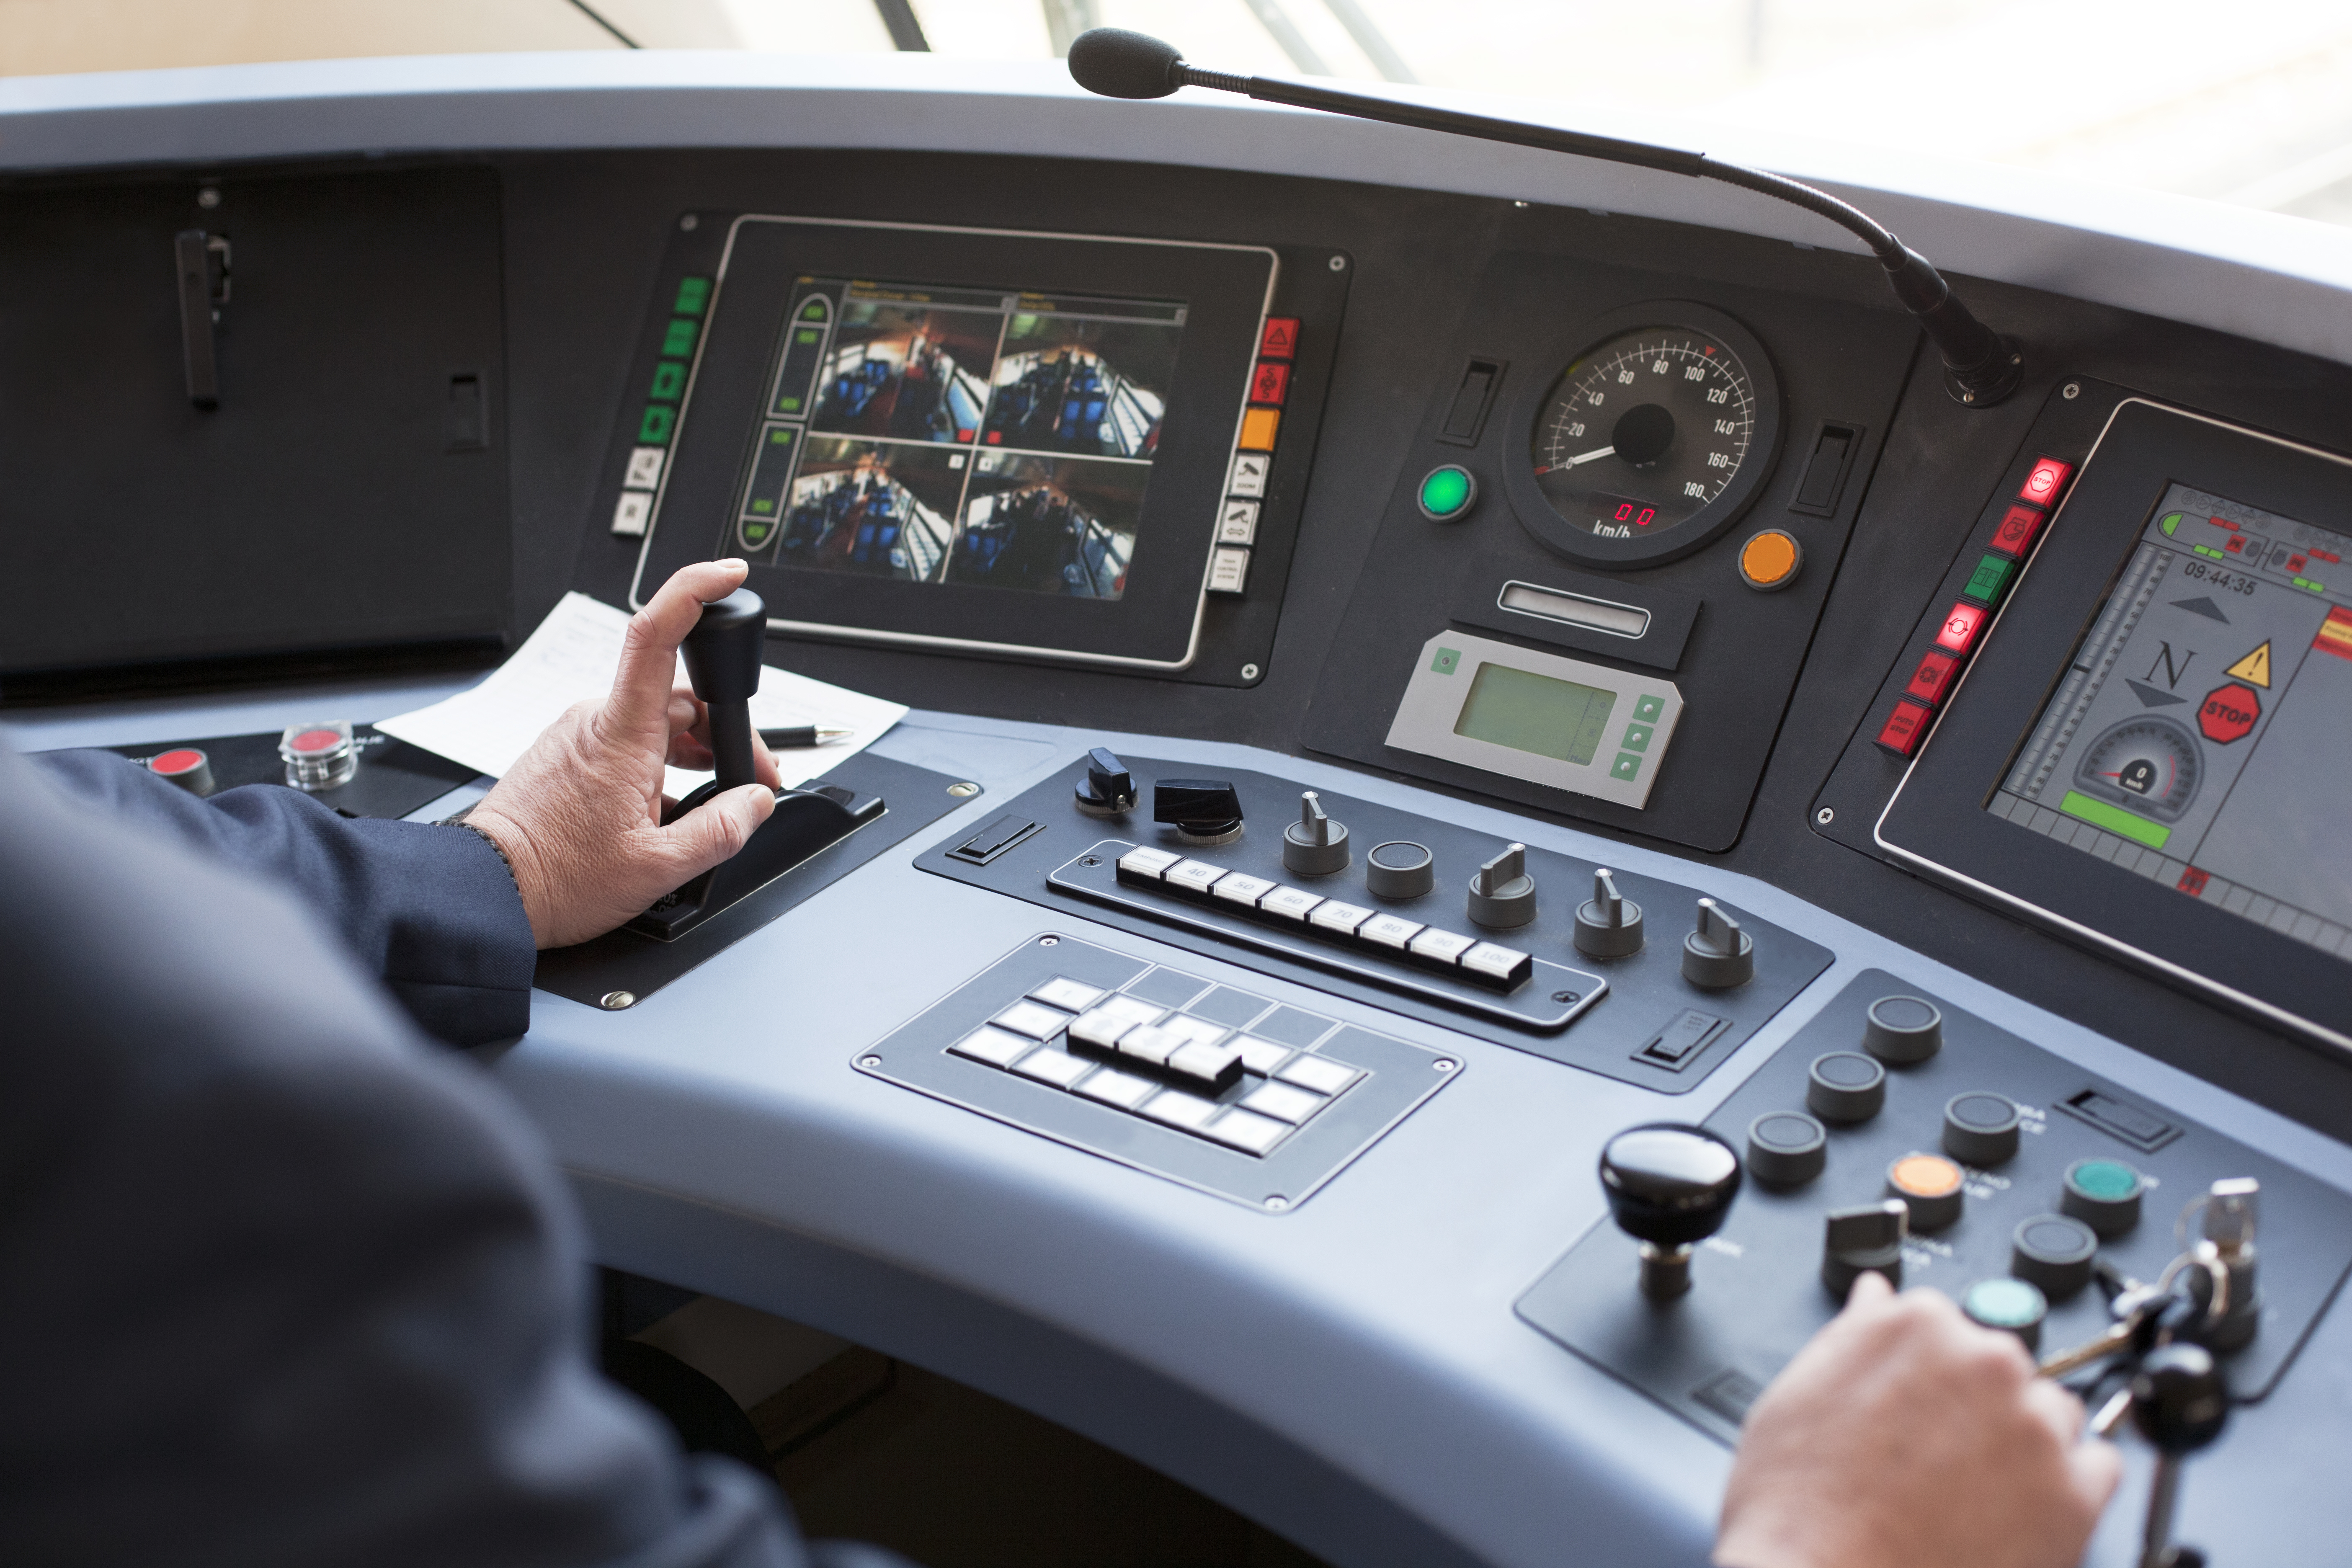 image showing train driver's console